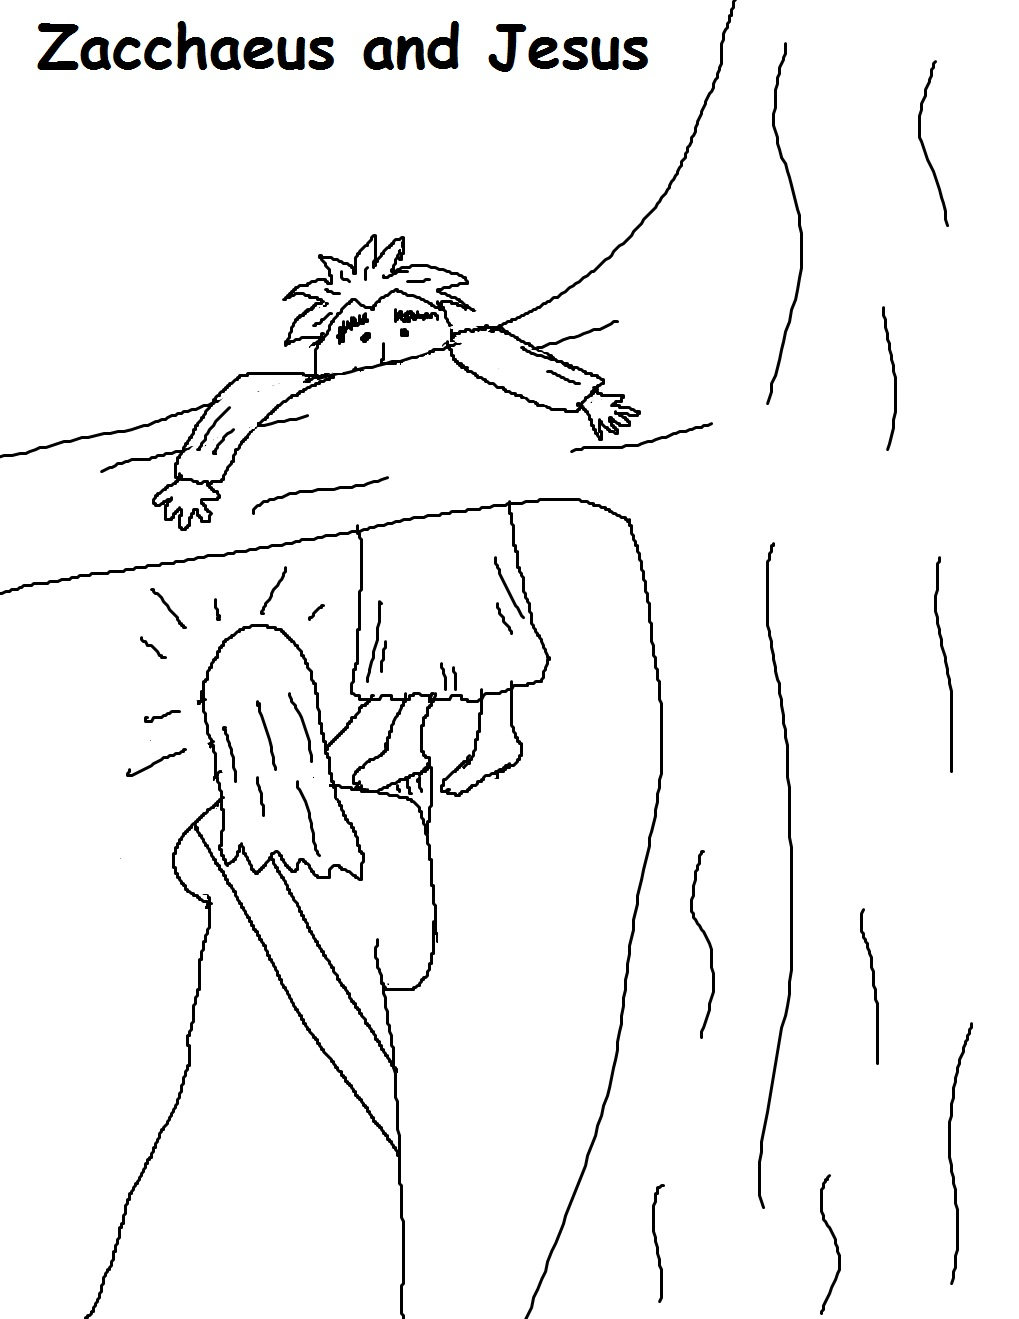 Zacchaeus Coloring Pages http://www.churchhousecollection.com/zacchaeus-sunday-school-lesson.php